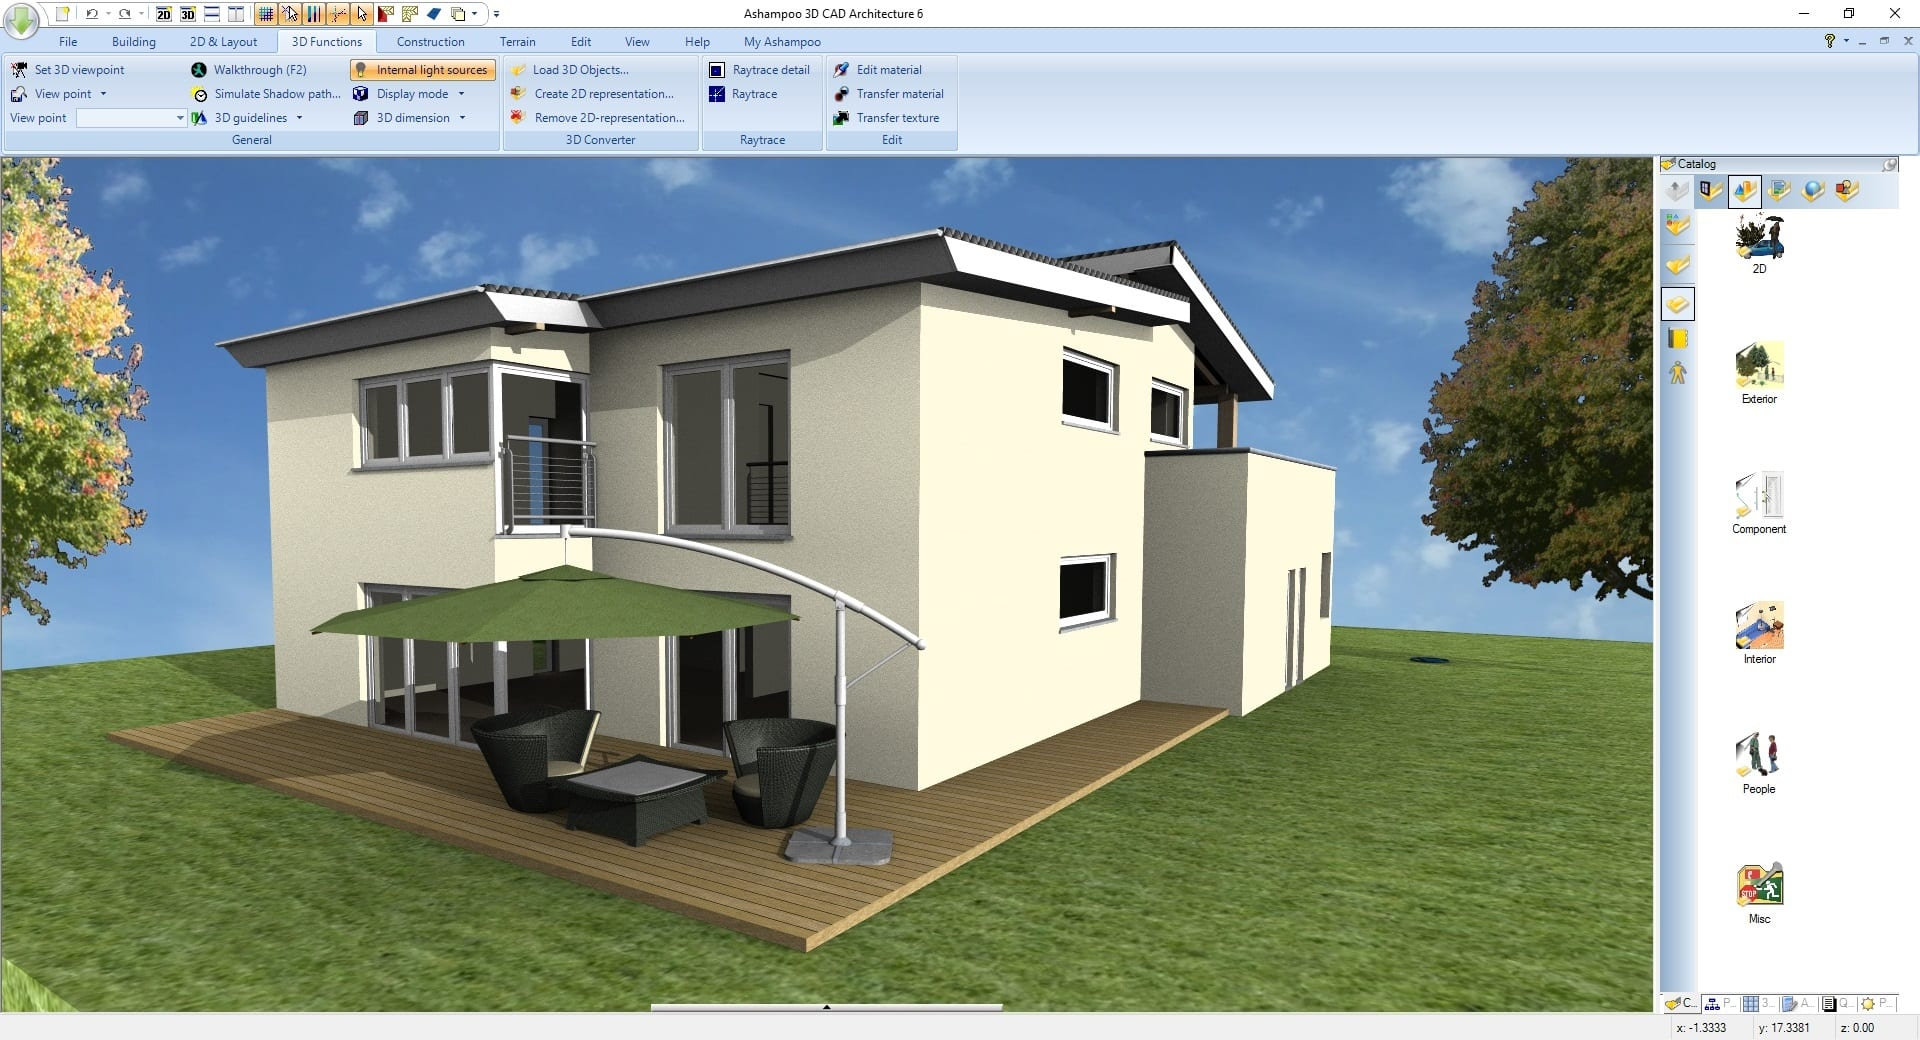 Ashampoo 3D CAD Architecture 6 - Download